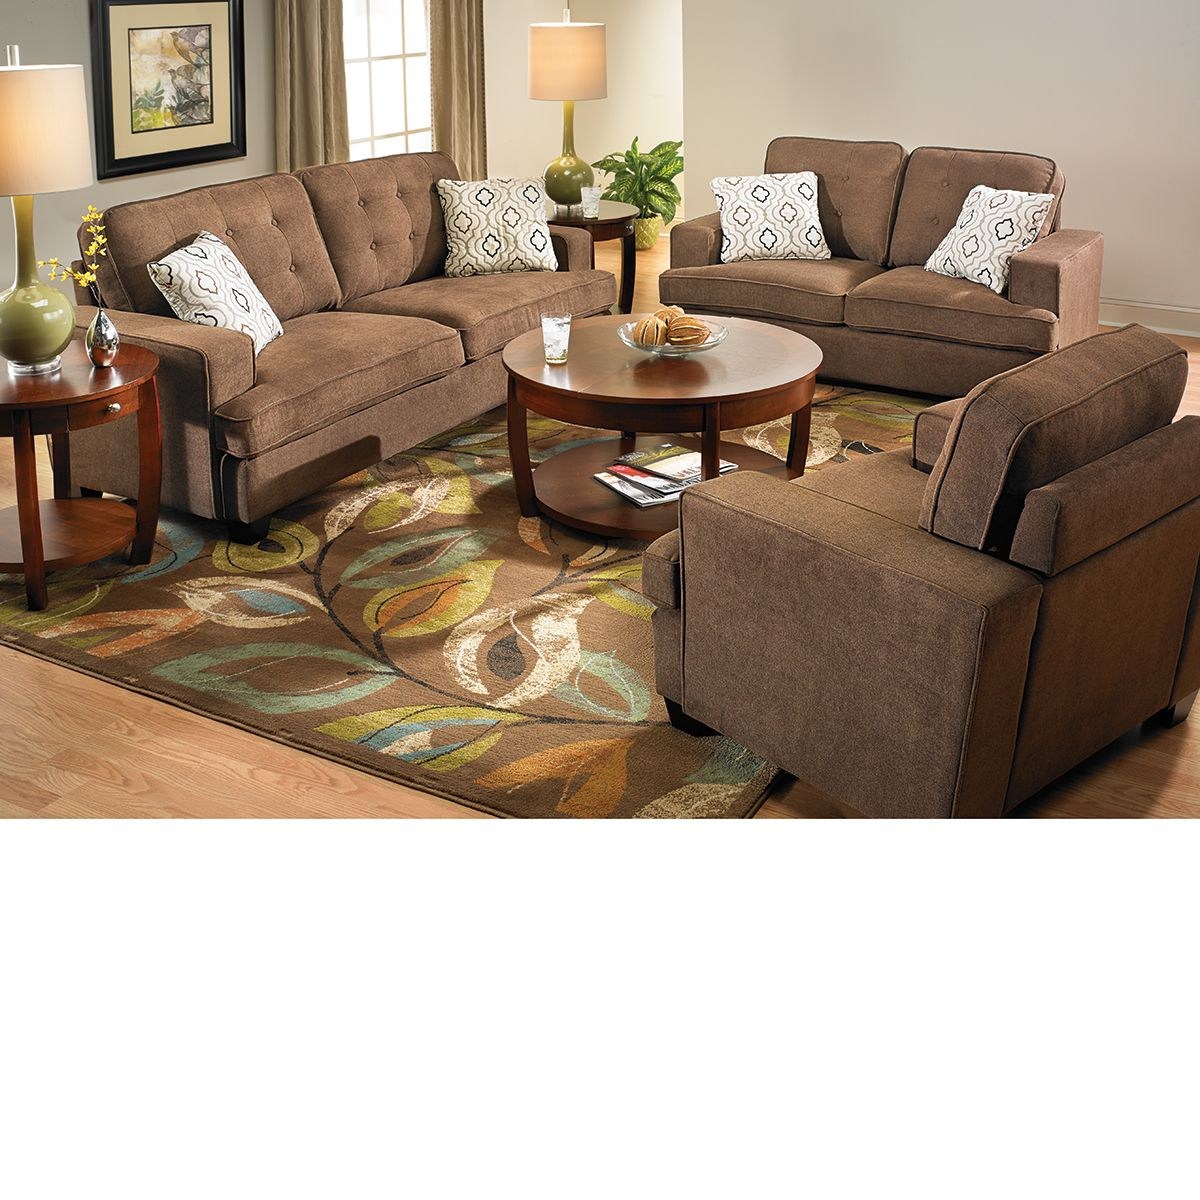 Fabric Closeout: 3 Piece Sofa Group